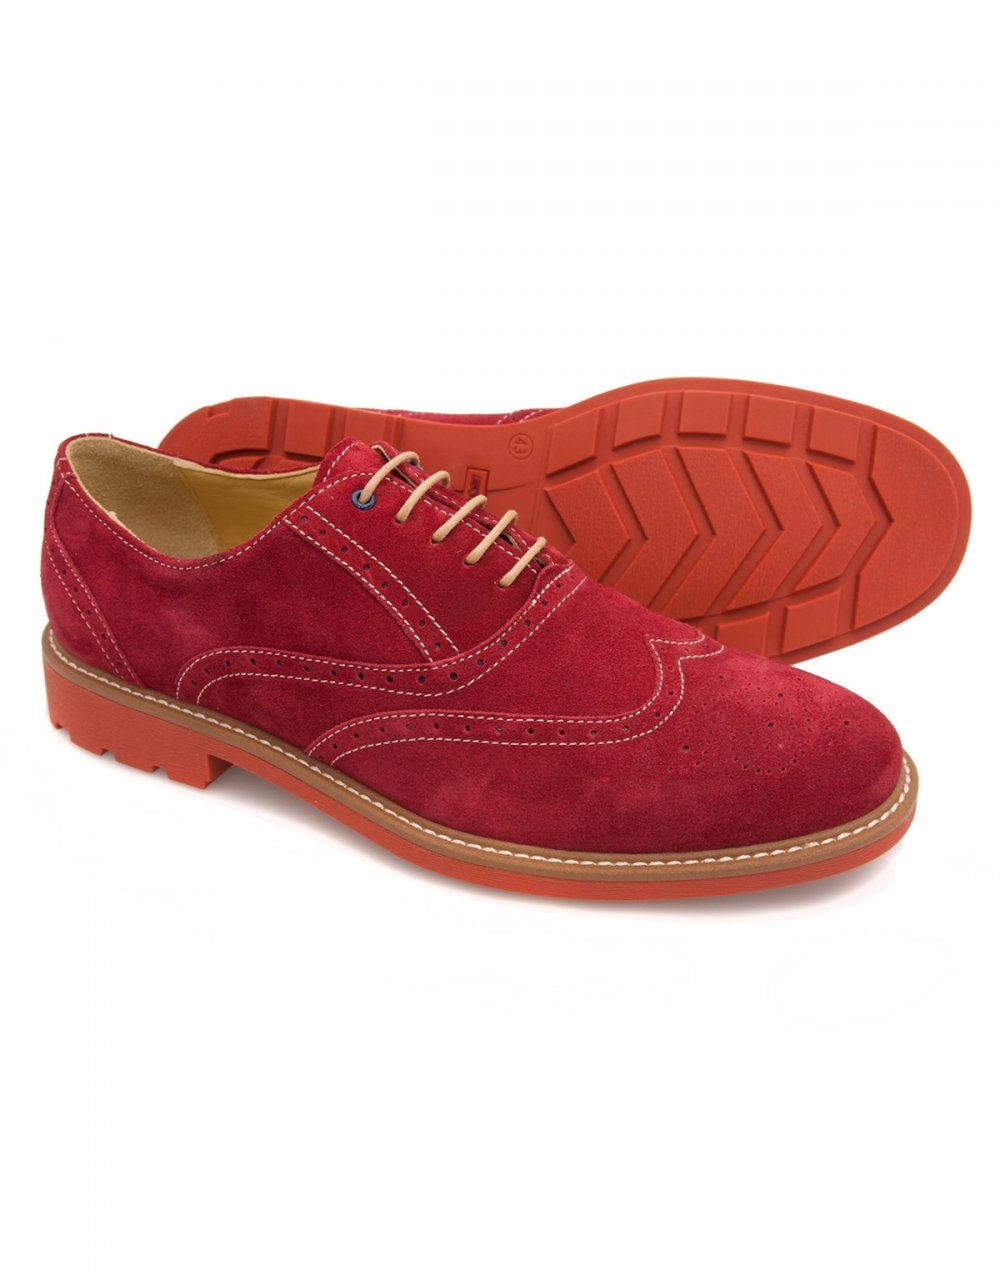 Le Chateau Red Shoes